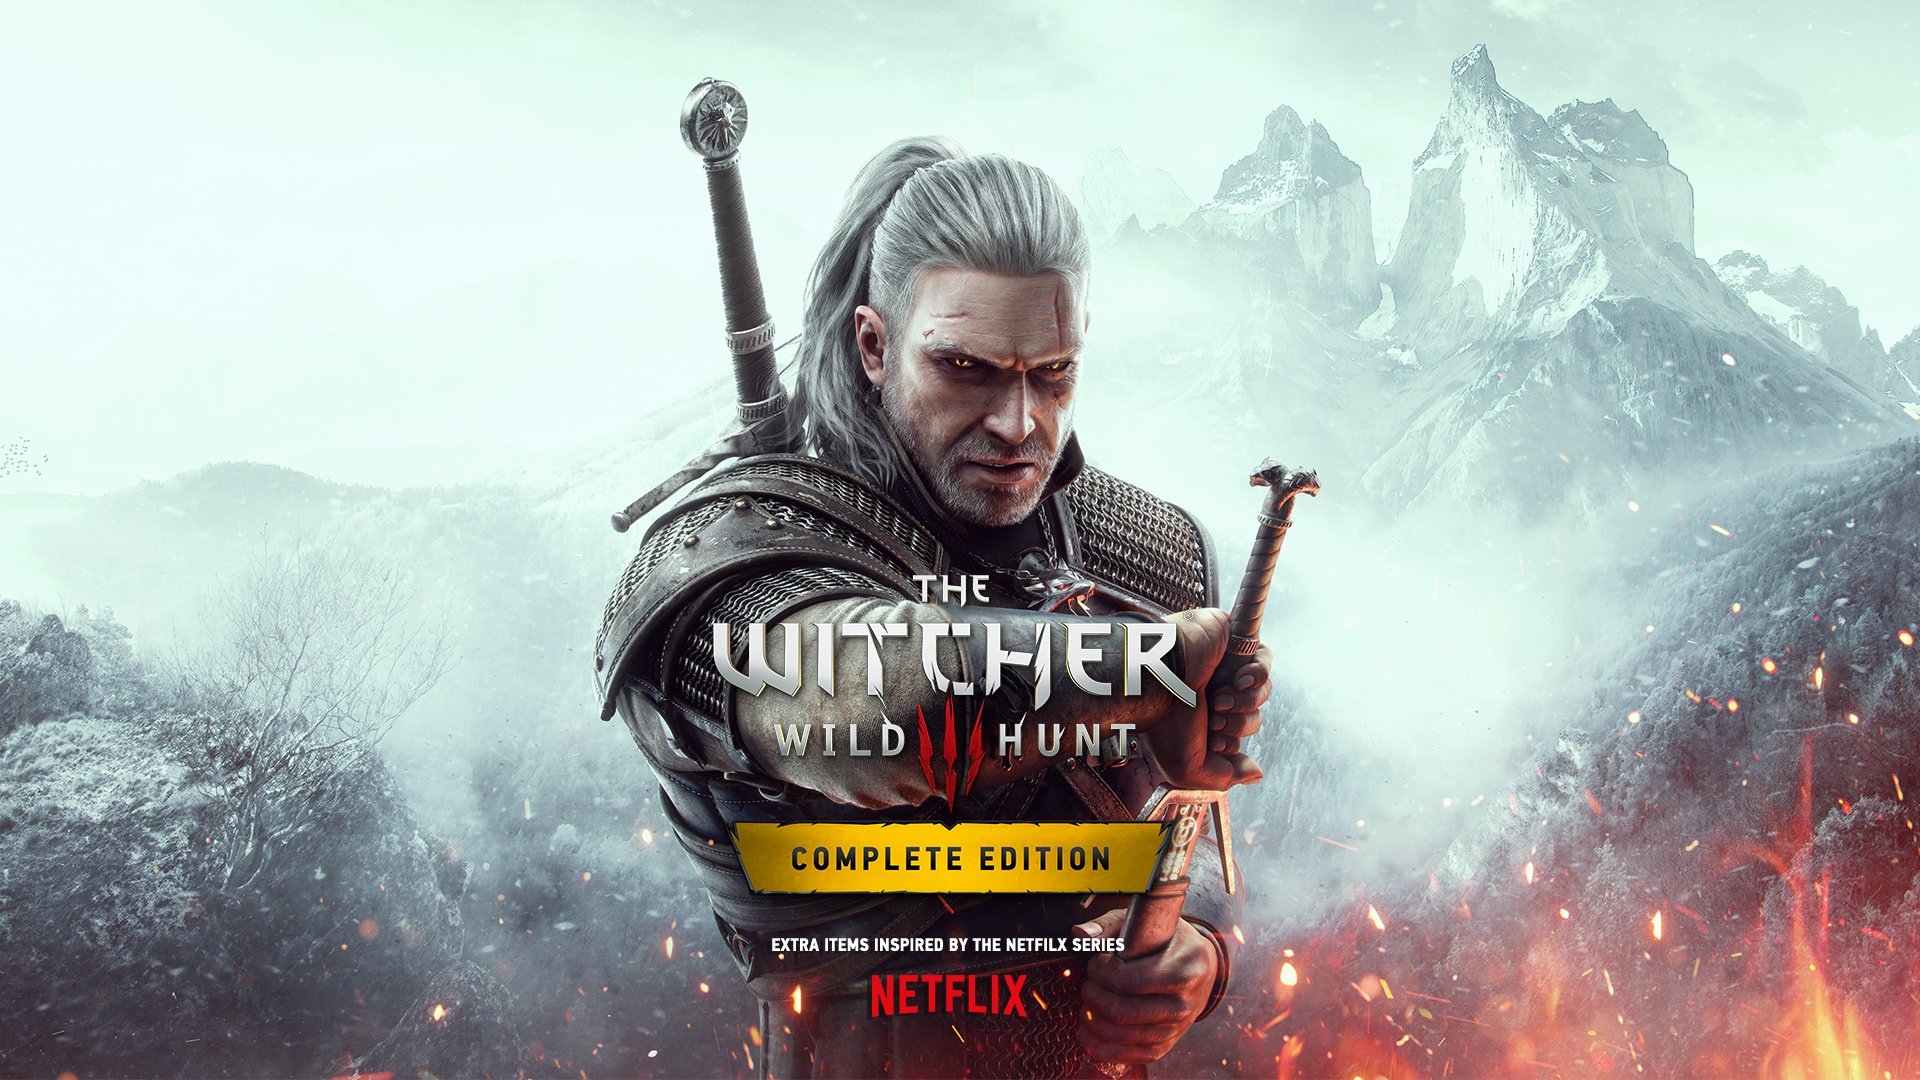 The Witcher 3: Wild Hunt Complete Edition for Xbox Series X|S and PS5 will Include Netflix-Show Inspired DLC